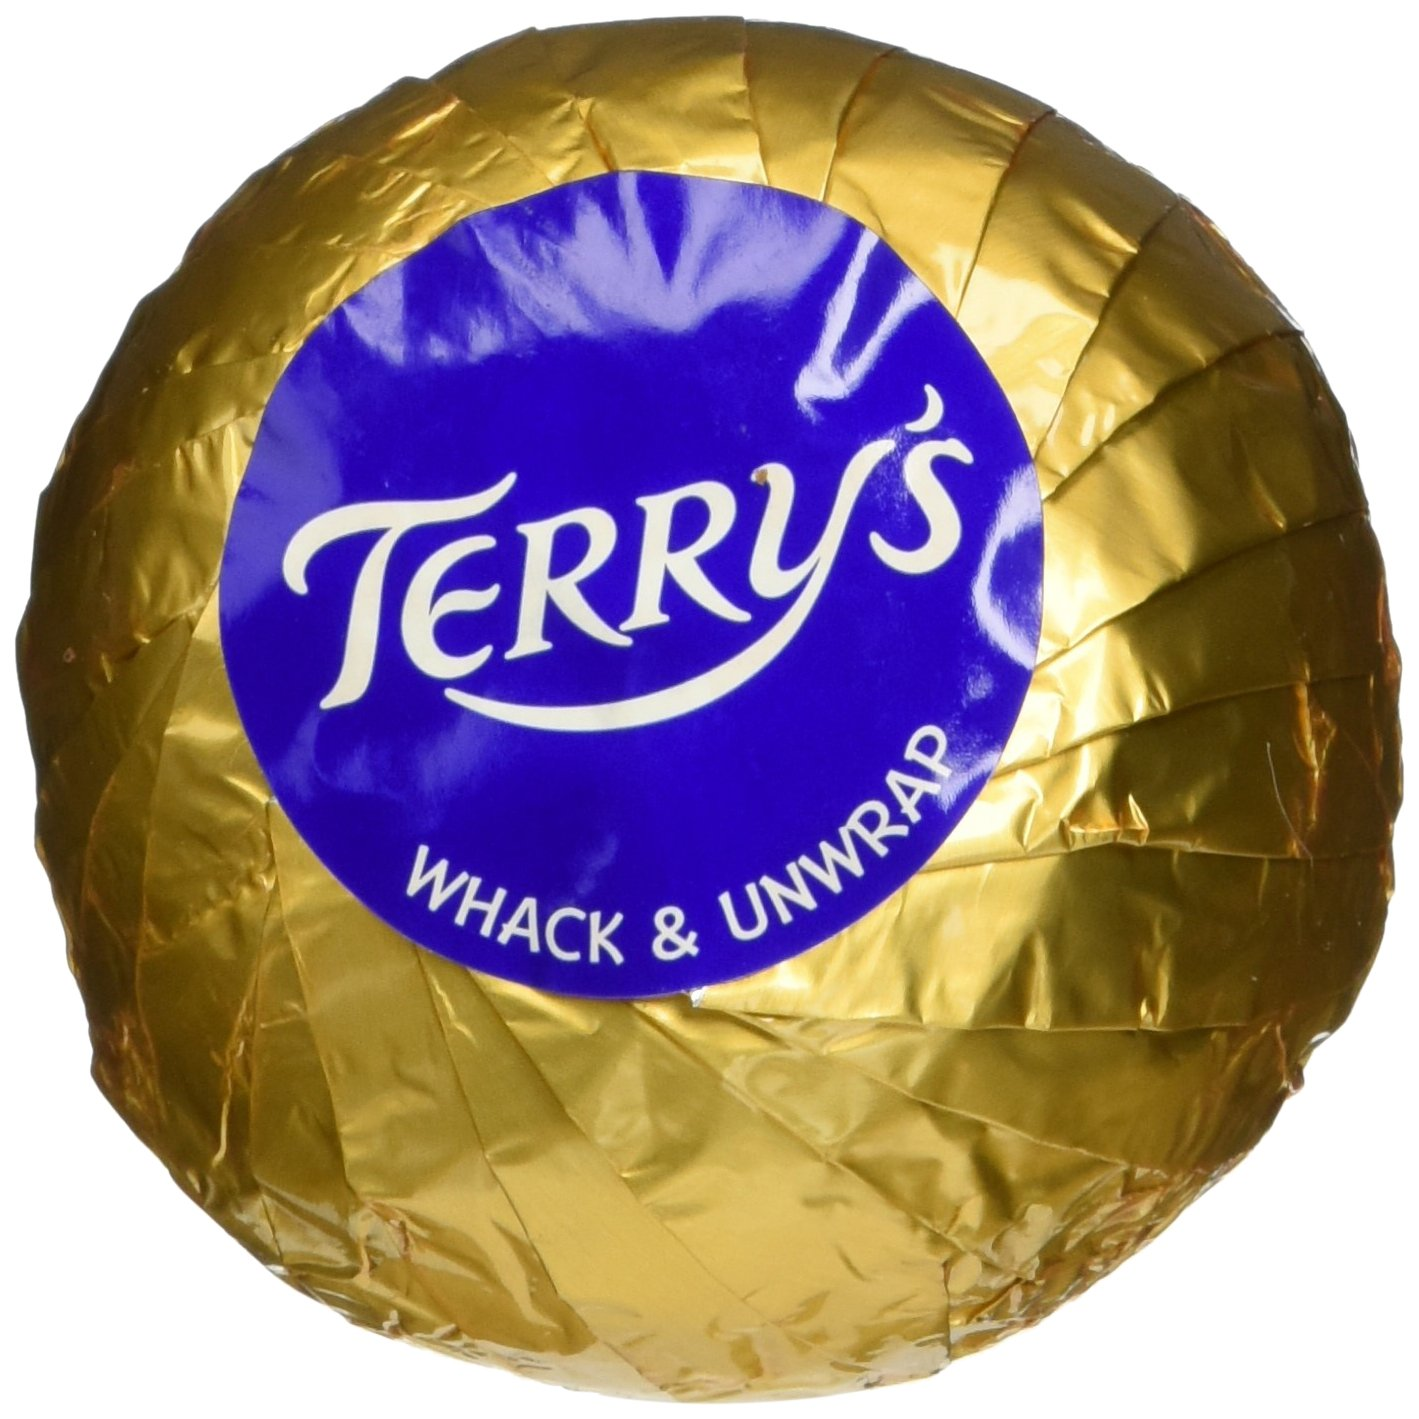 Amazon.com : Terry's Chocolate Orange, Dark Chocolate : Candy And ...